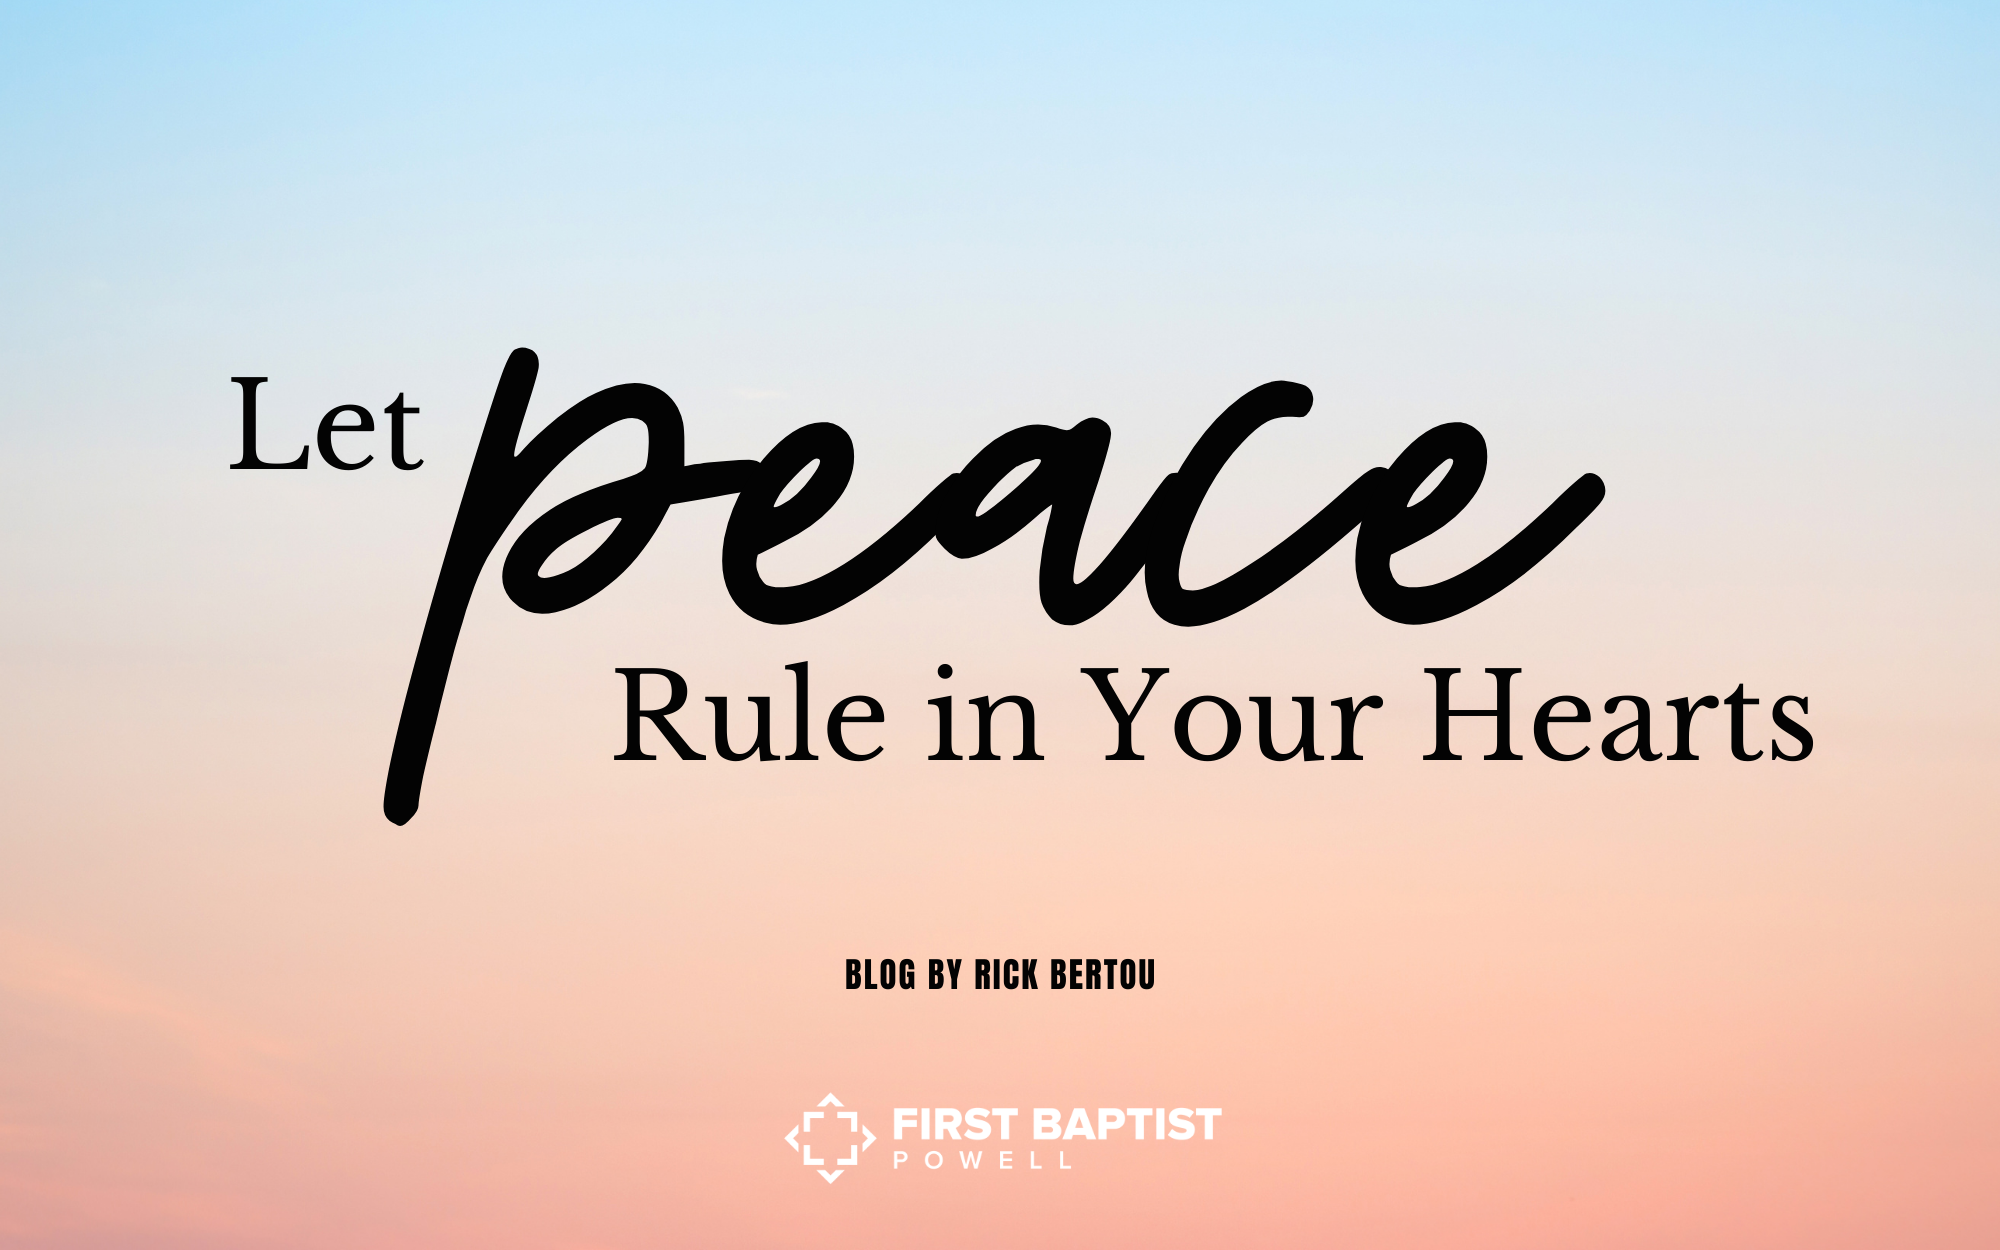 Let Peace Rule in Your Hearts